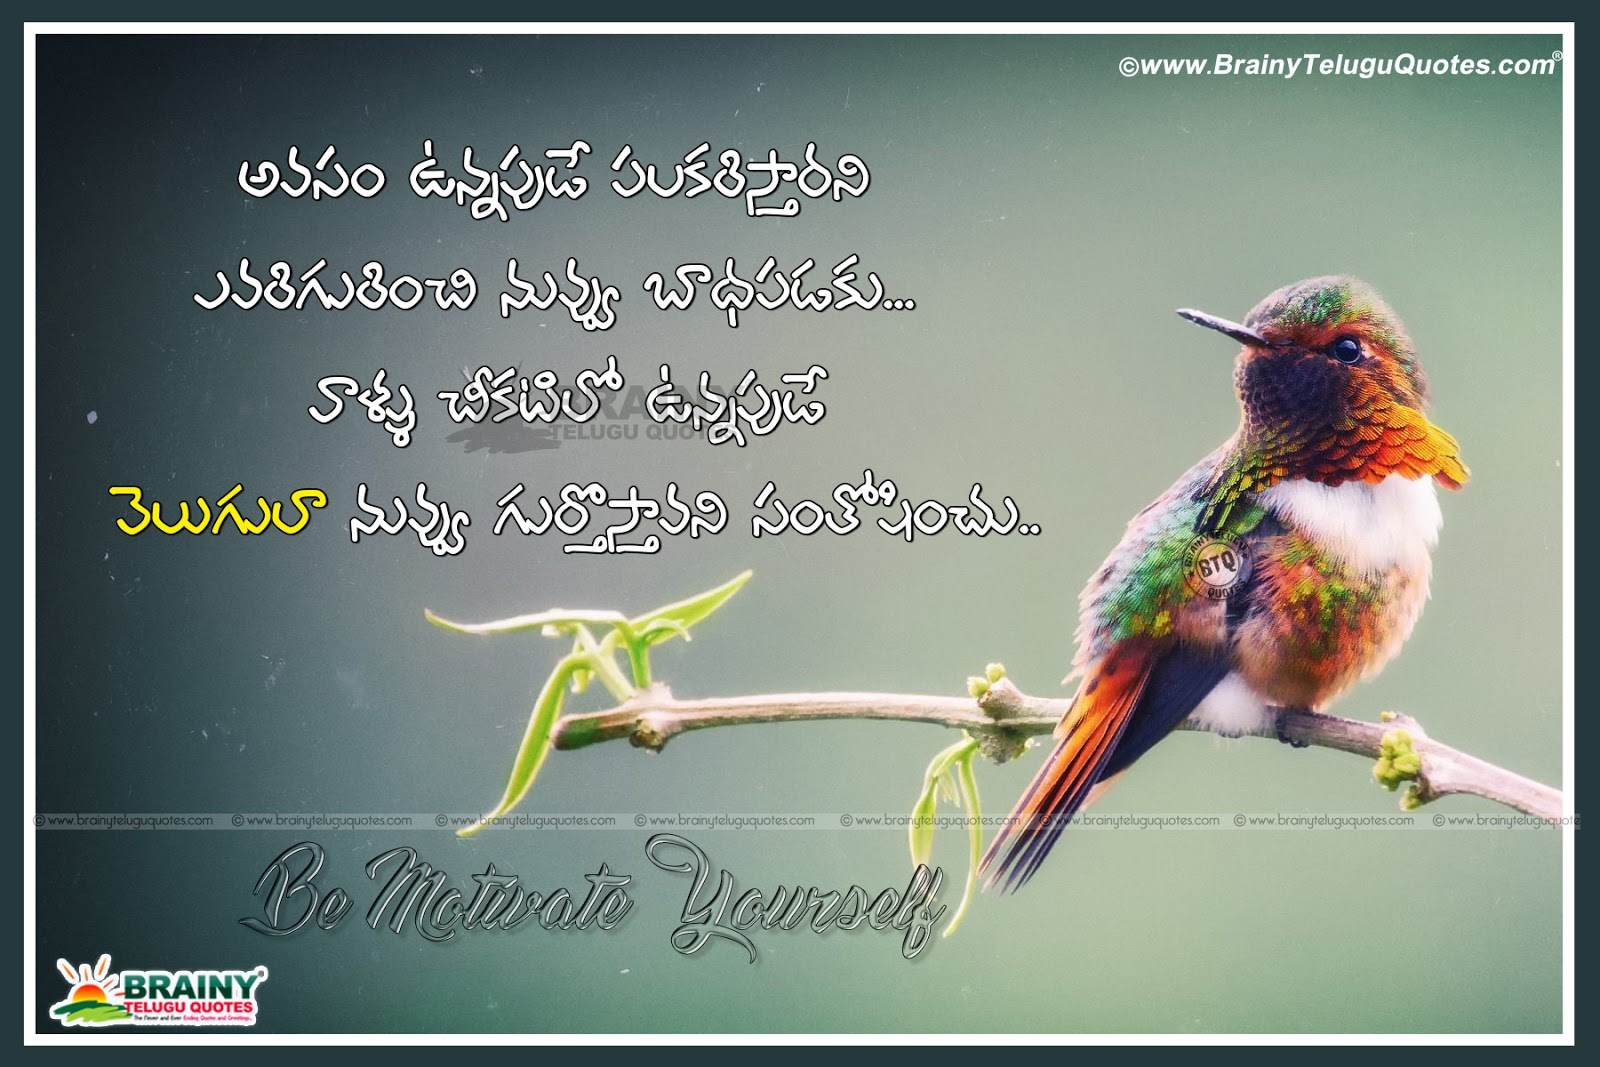 motivational life quotes in telugu be motivate yourself